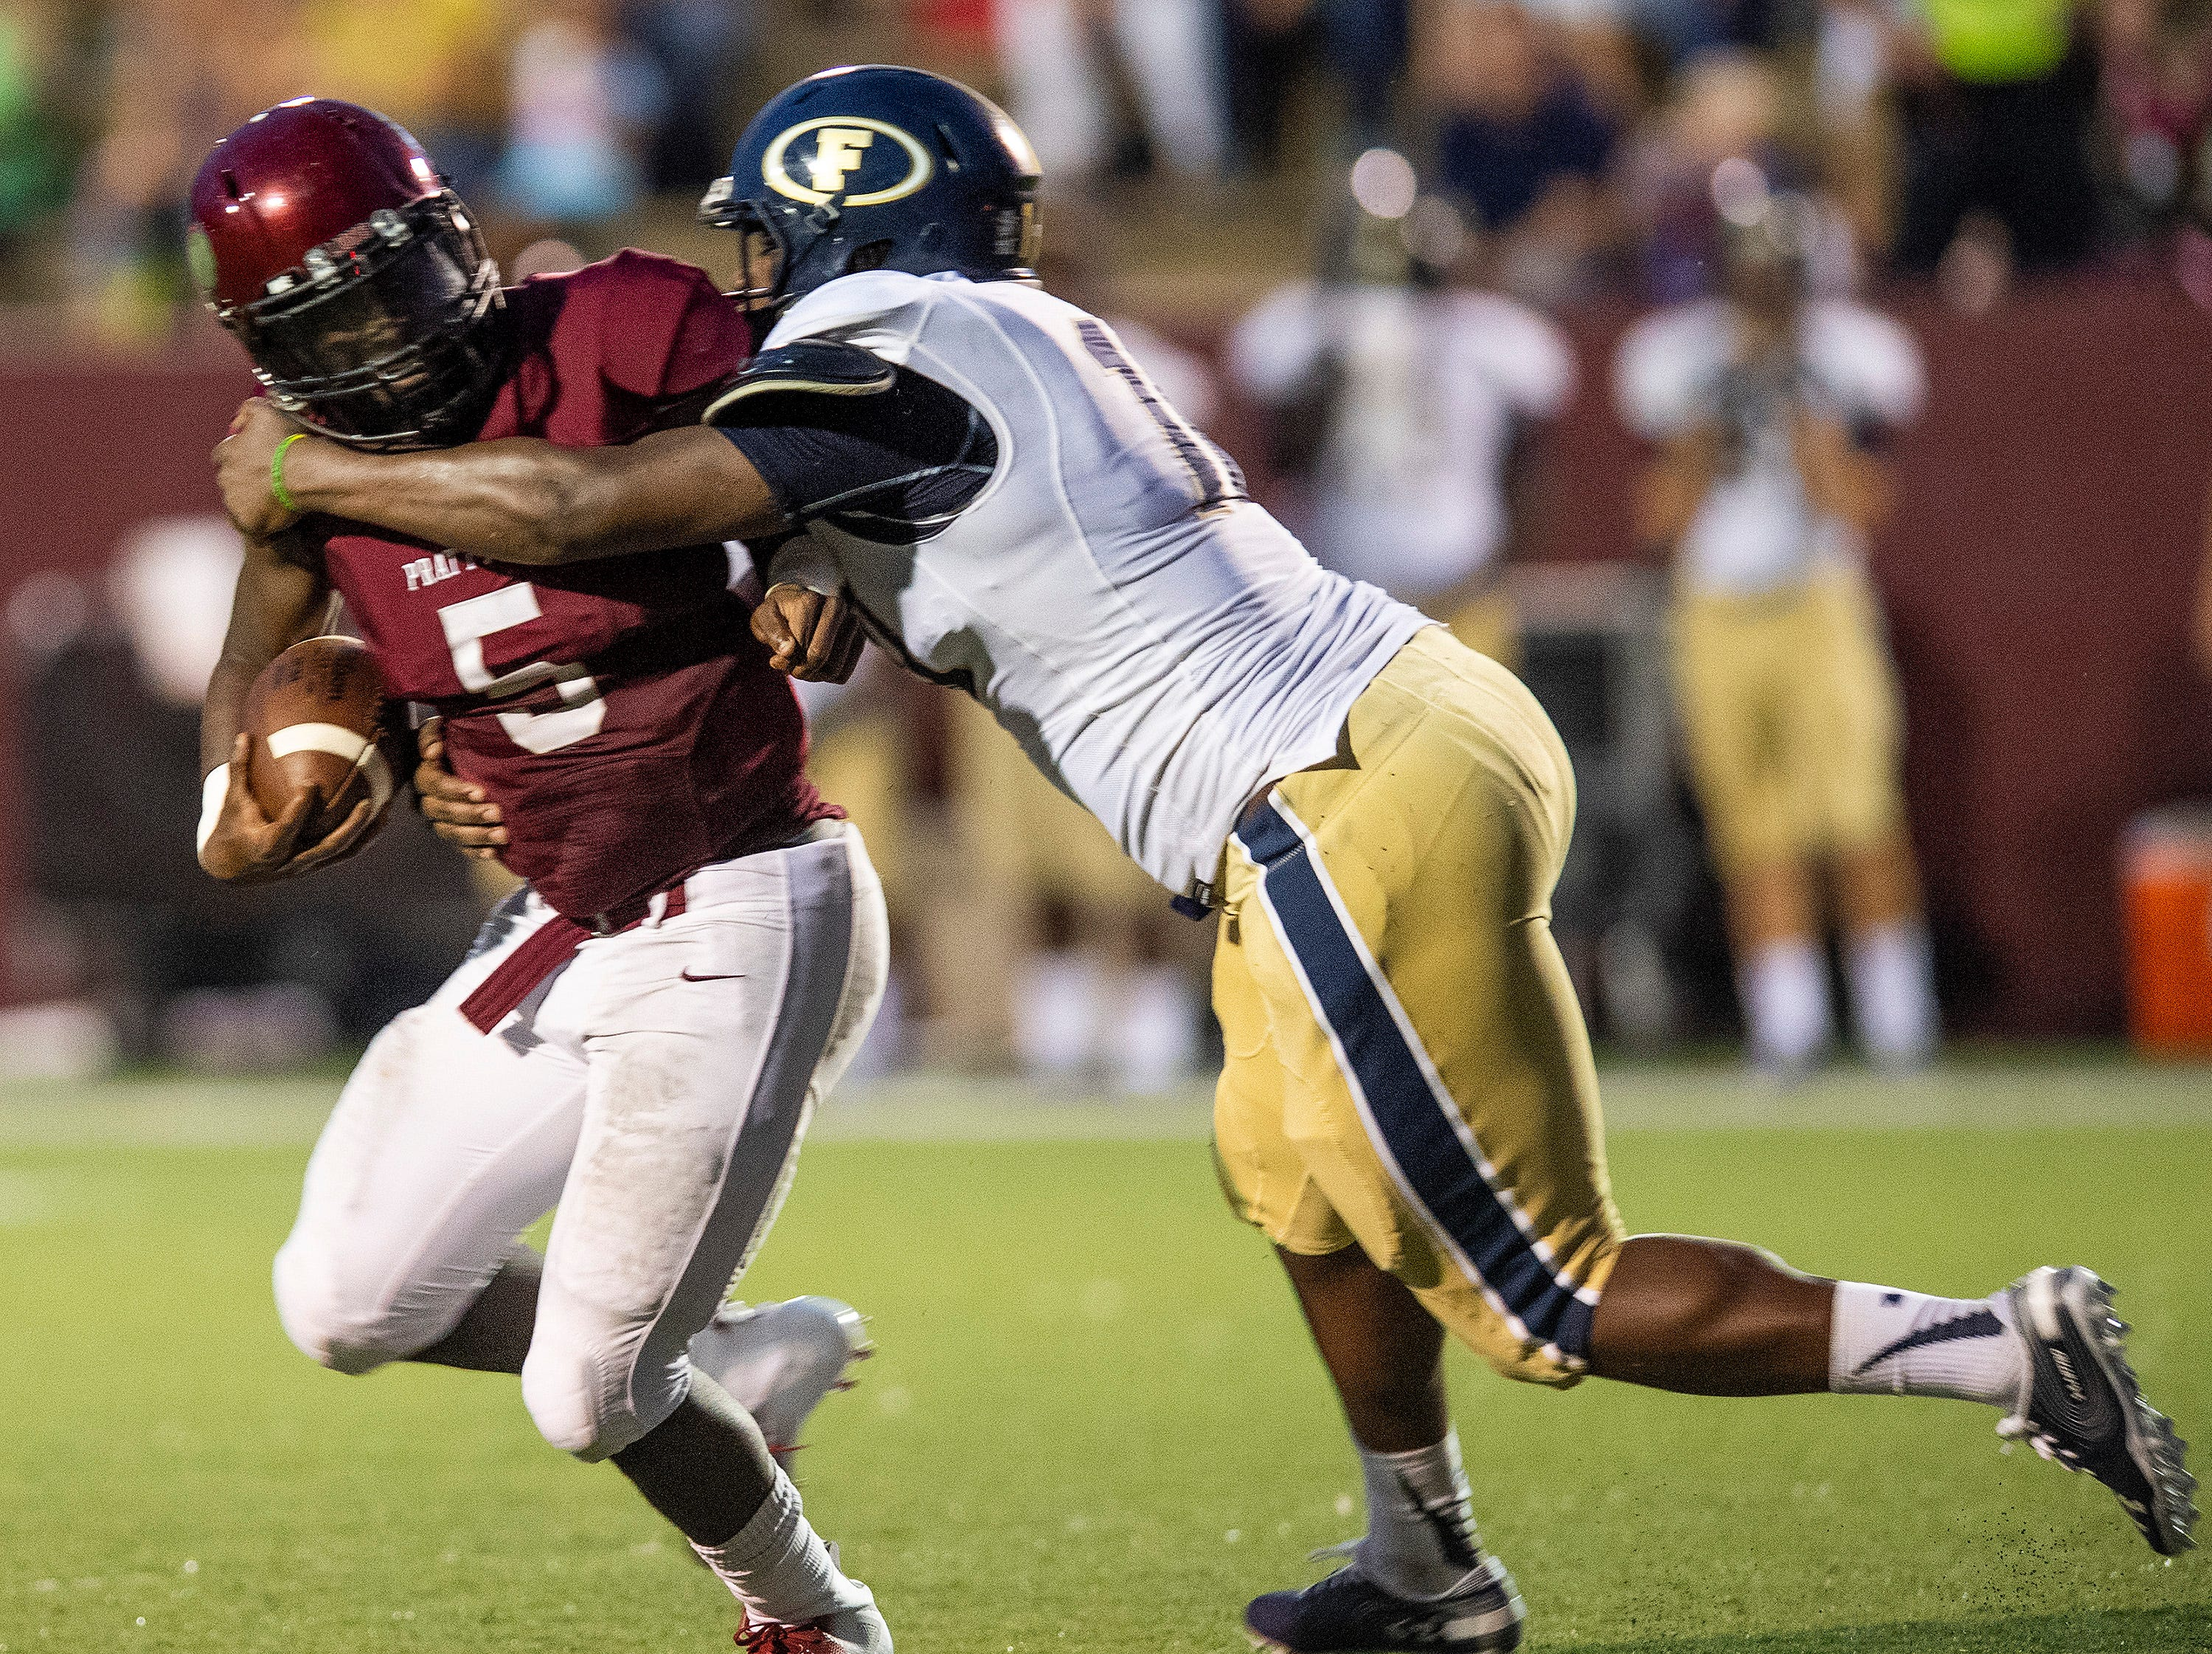 Prattville's Traair Edwards is stopped by Foley's Demarion Johnson at Stanley-Jensen Stadium in Prattville, Ala., on Friday August 24, 2018.